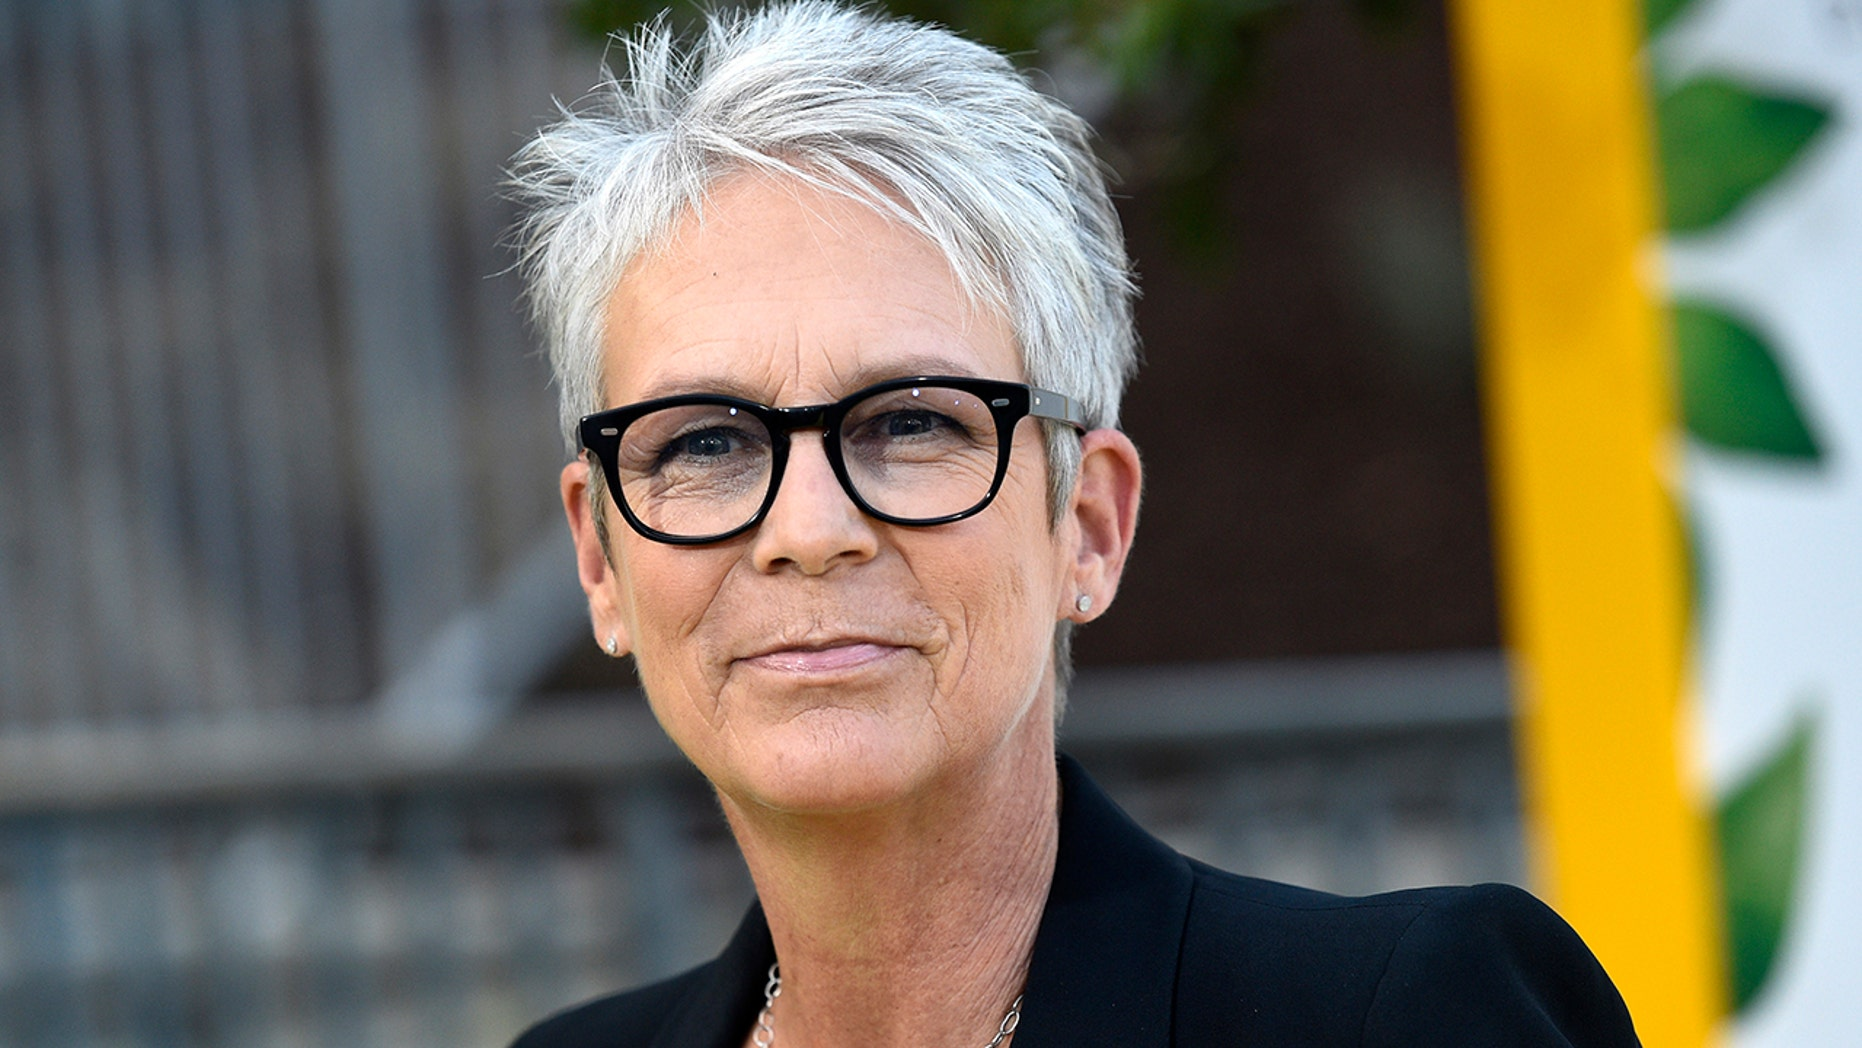 Jamie Lee Curtis' on-screen actions stand in contrast to her real-life persona as an advocate for gun control.